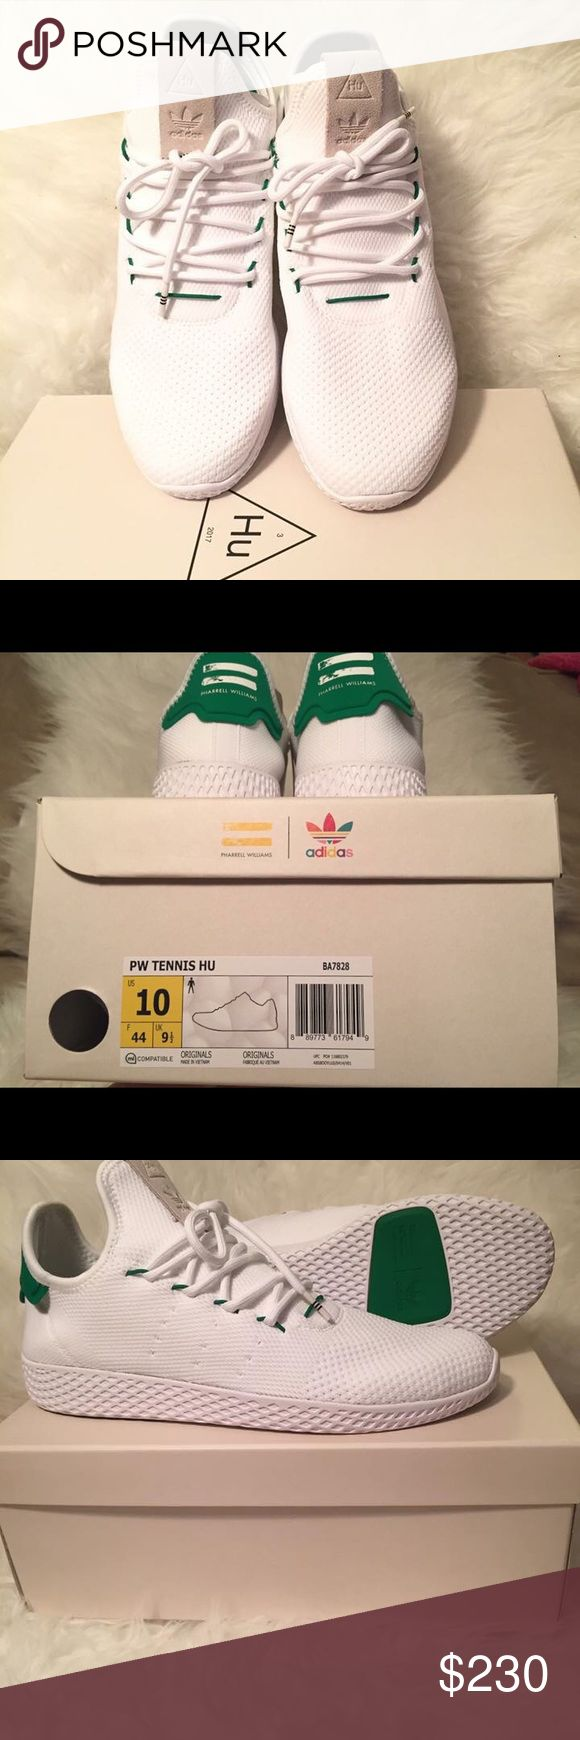 Pharrell Williams tennis HU Primeknit Shoes Pharrell Williams tennis HU Primeknit Shoes size men us10 uk9.5  New : Come with box Sold out in store Adidas Shoes Sneakers